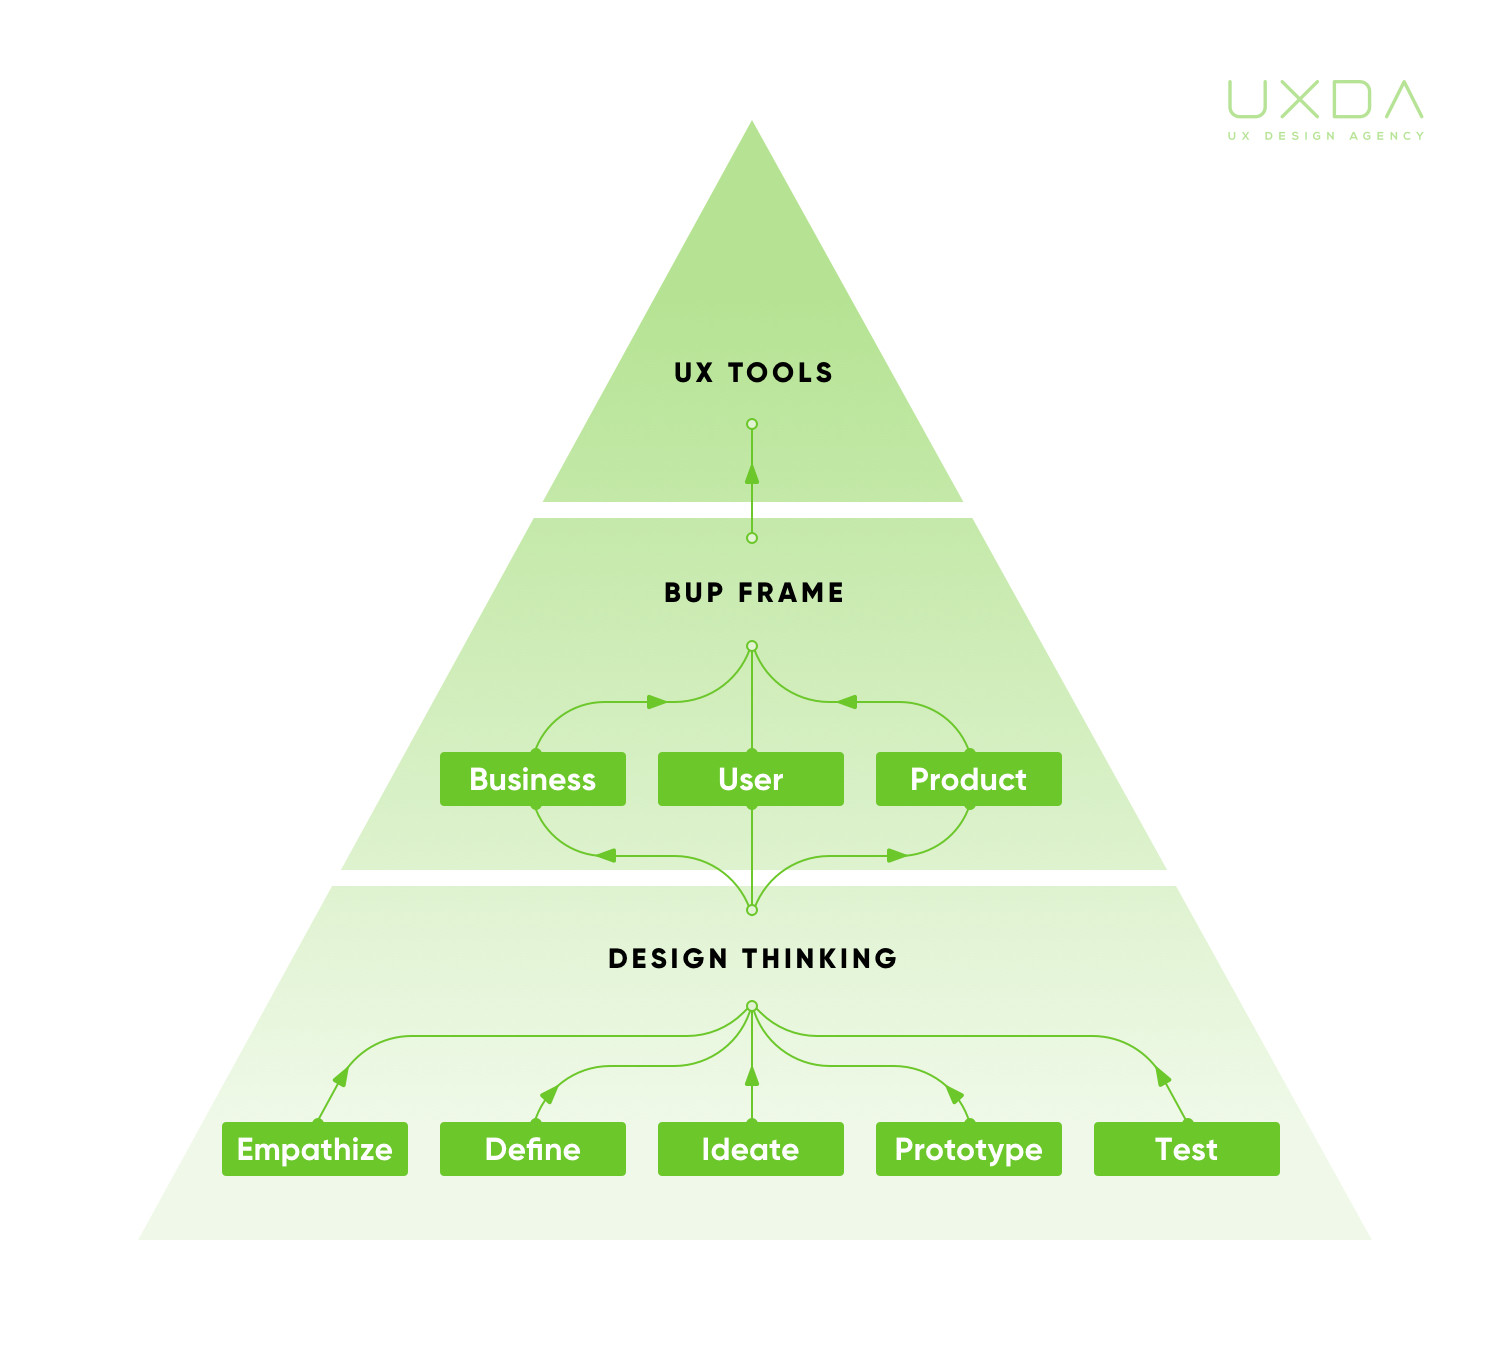 ux-design-for-banking-uxda-work-process-1-S.jpg